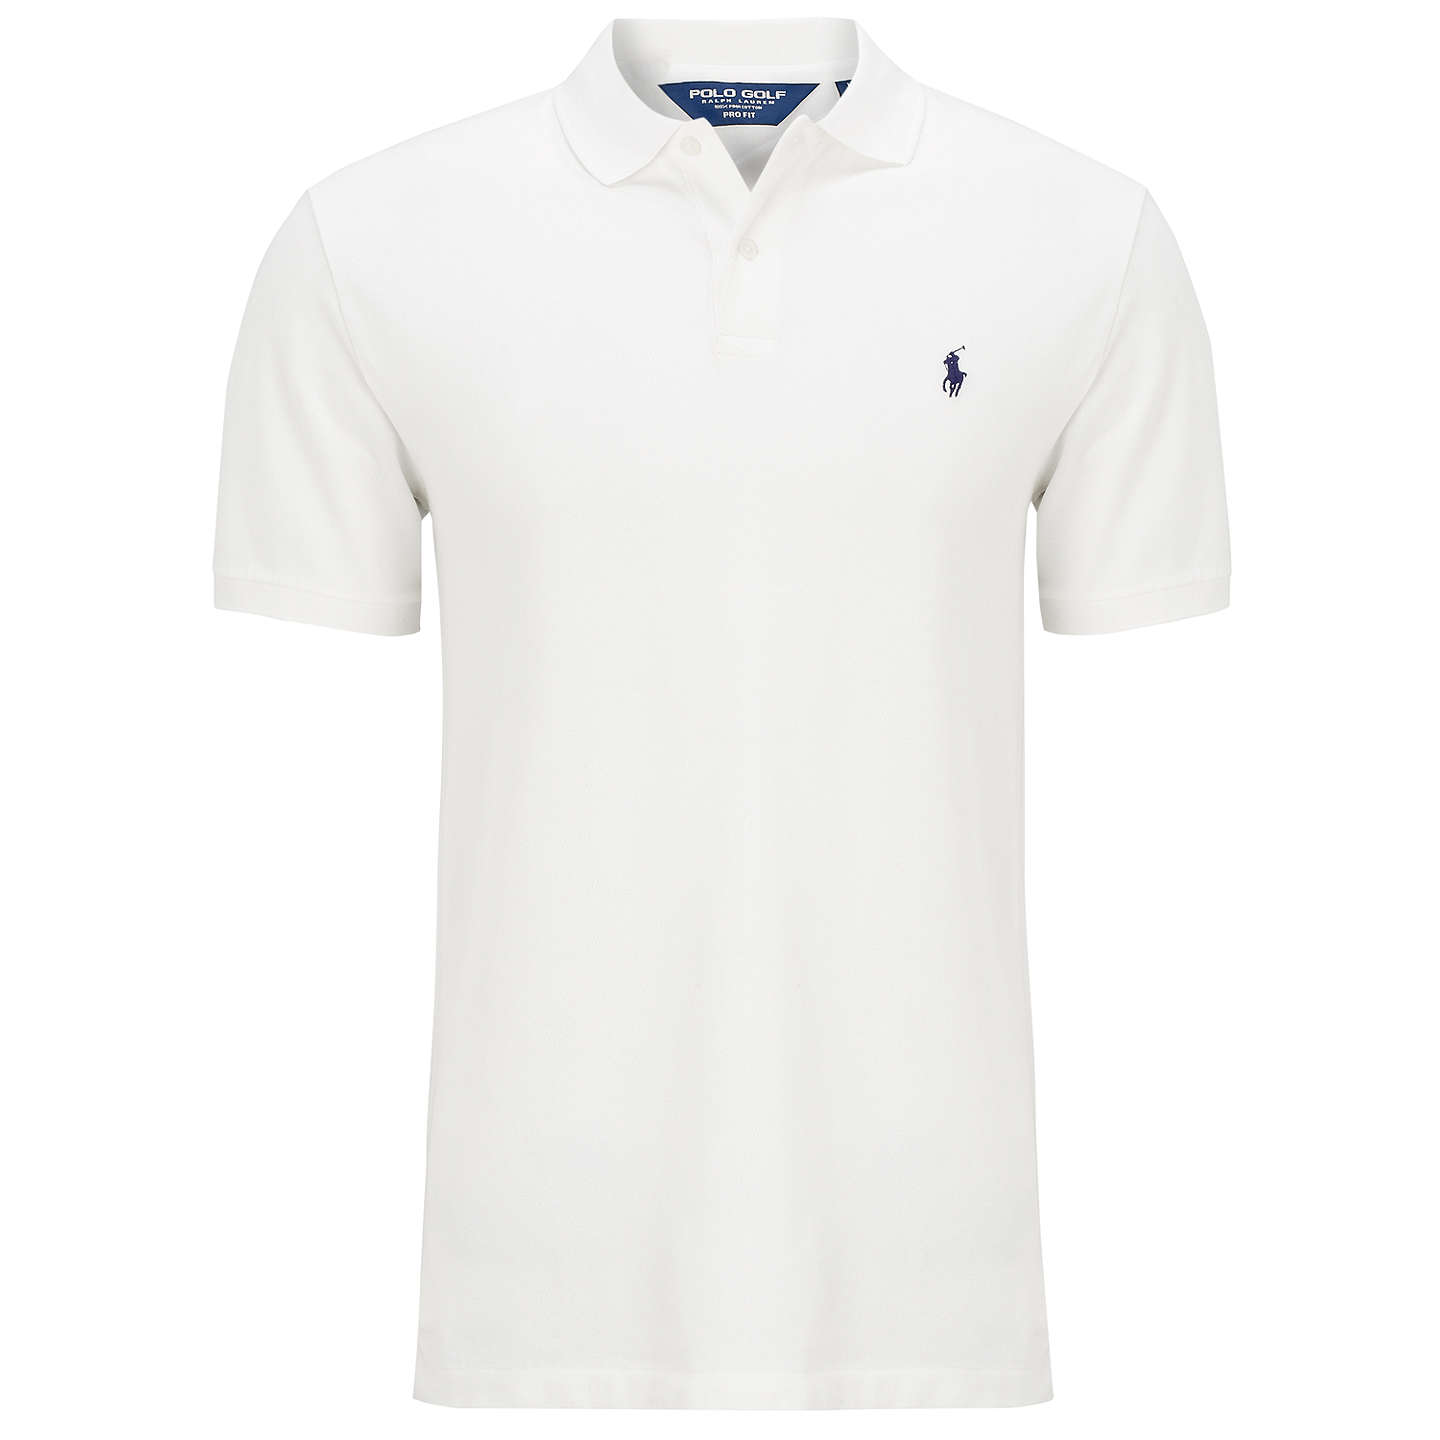 polo golf by ralph lauren pro fit polo shirt at john lewis. Black Bedroom Furniture Sets. Home Design Ideas